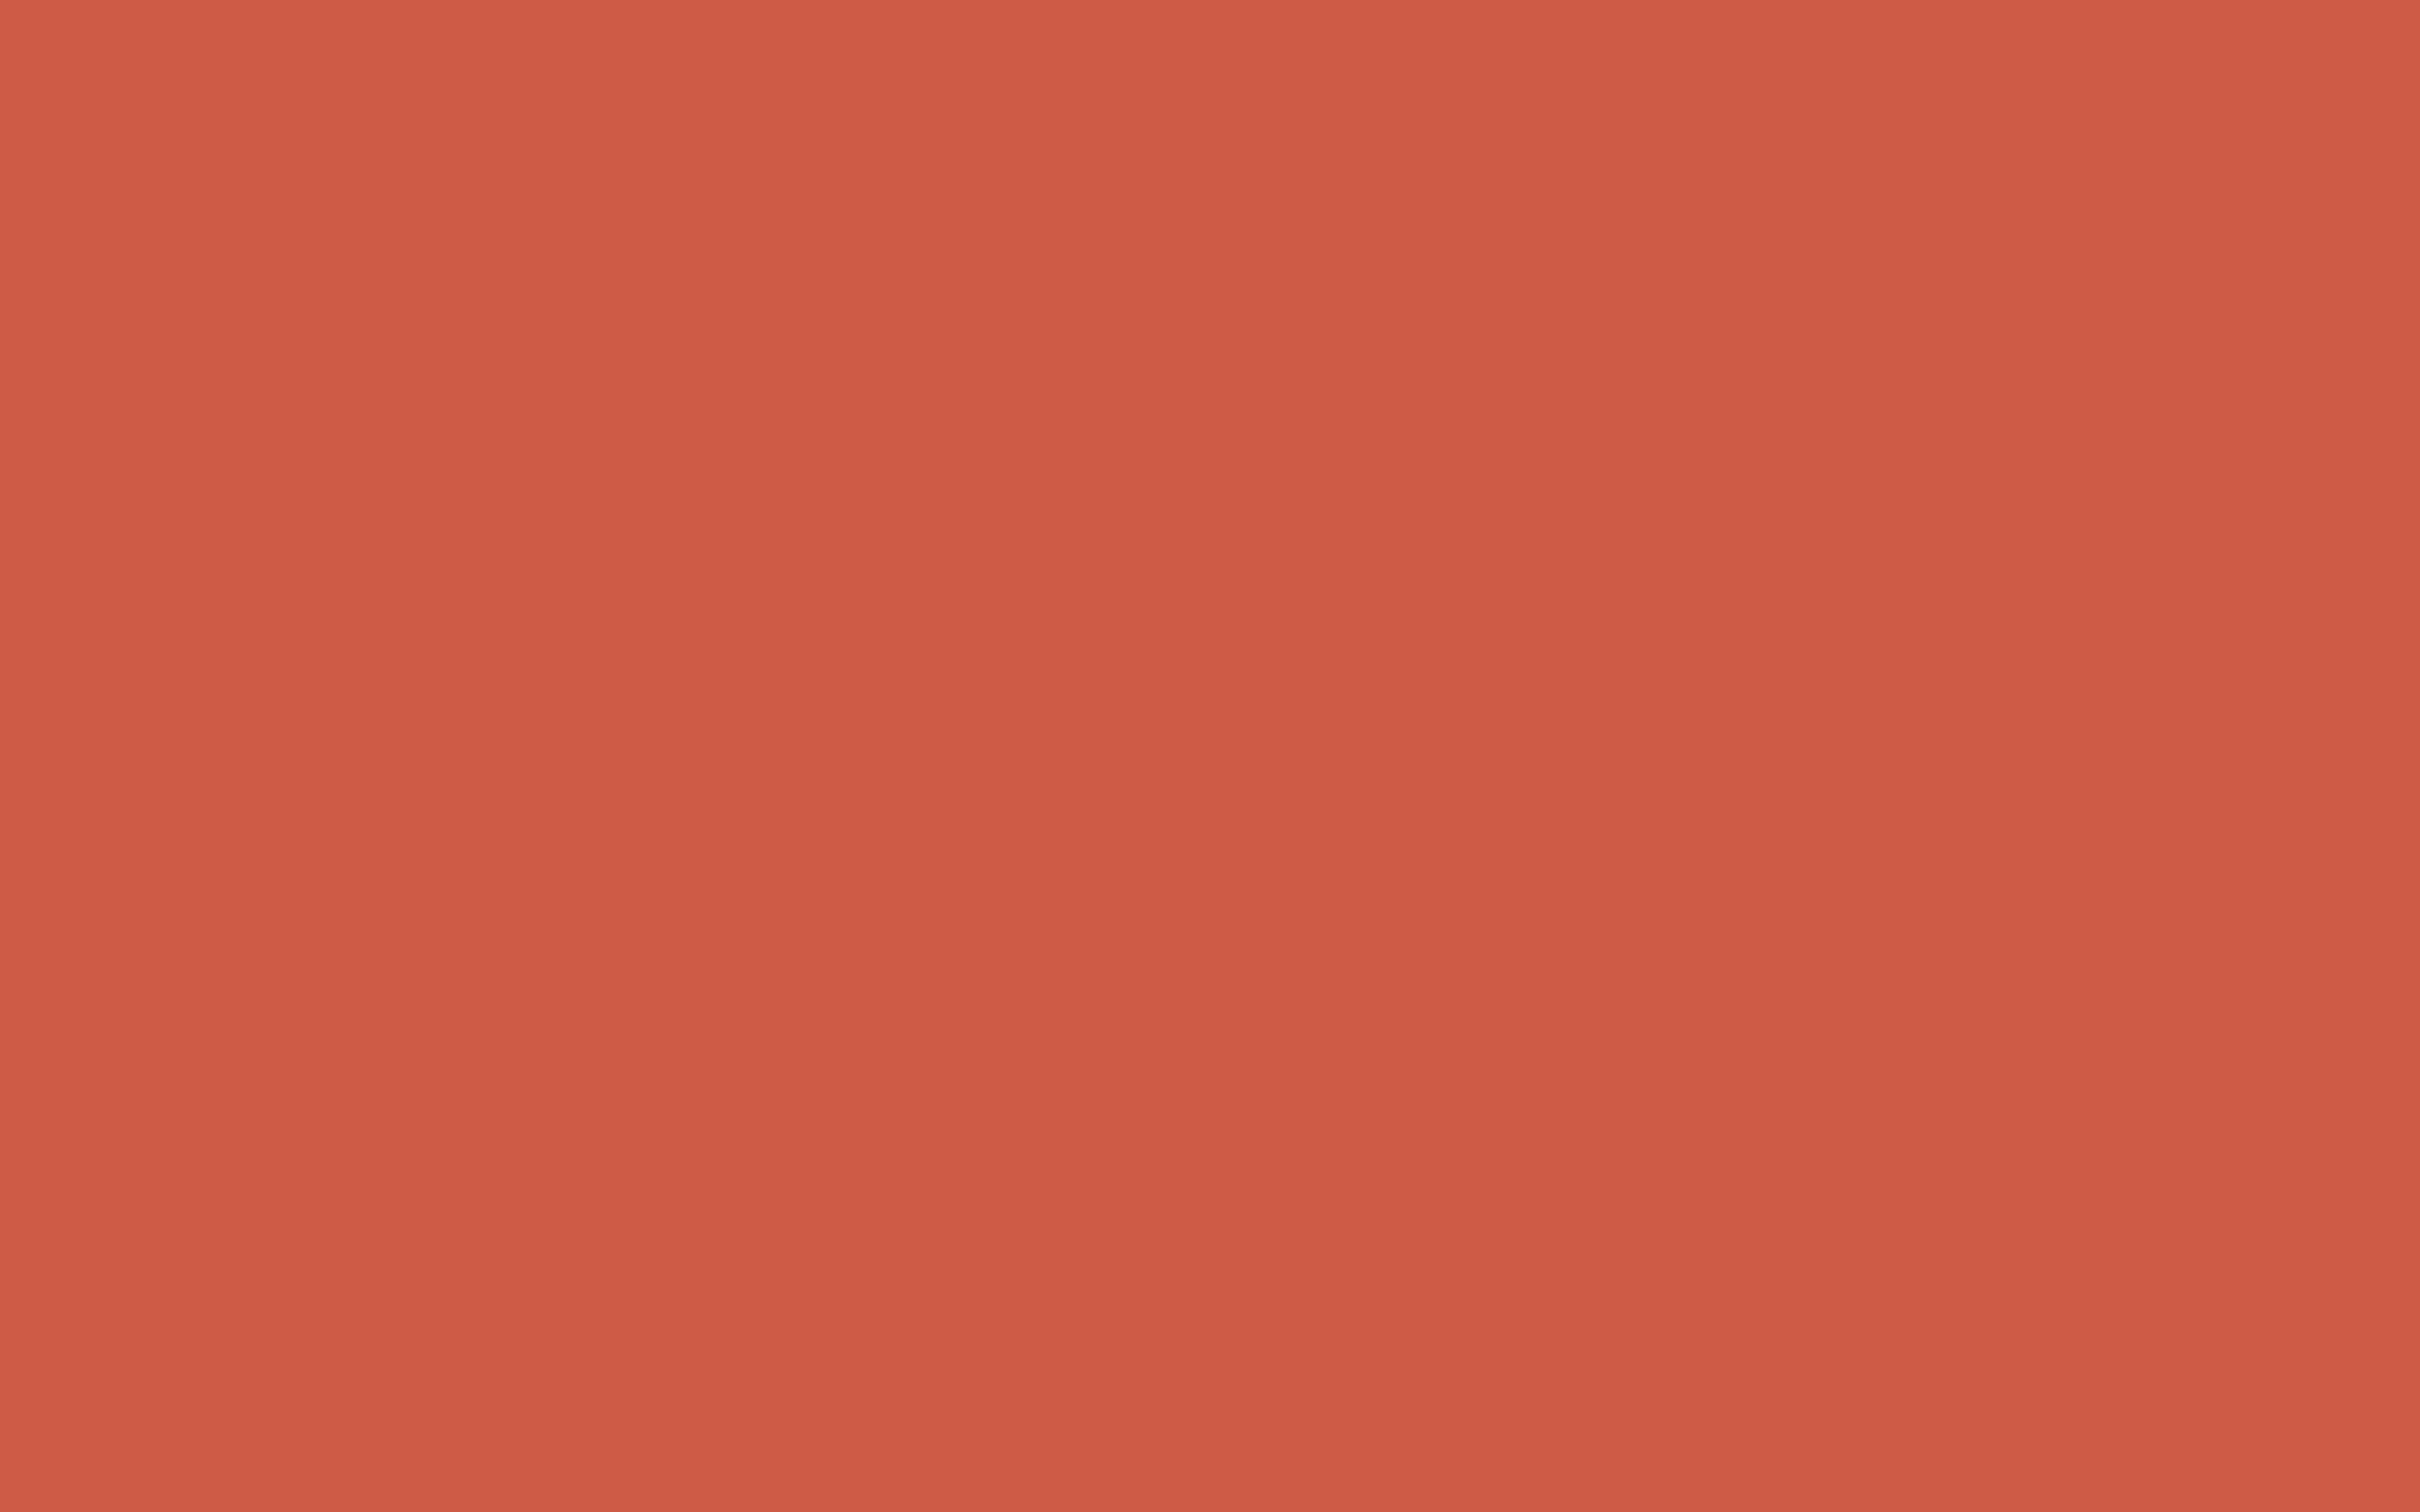 2880x1800 Dark Coral Solid Color Background